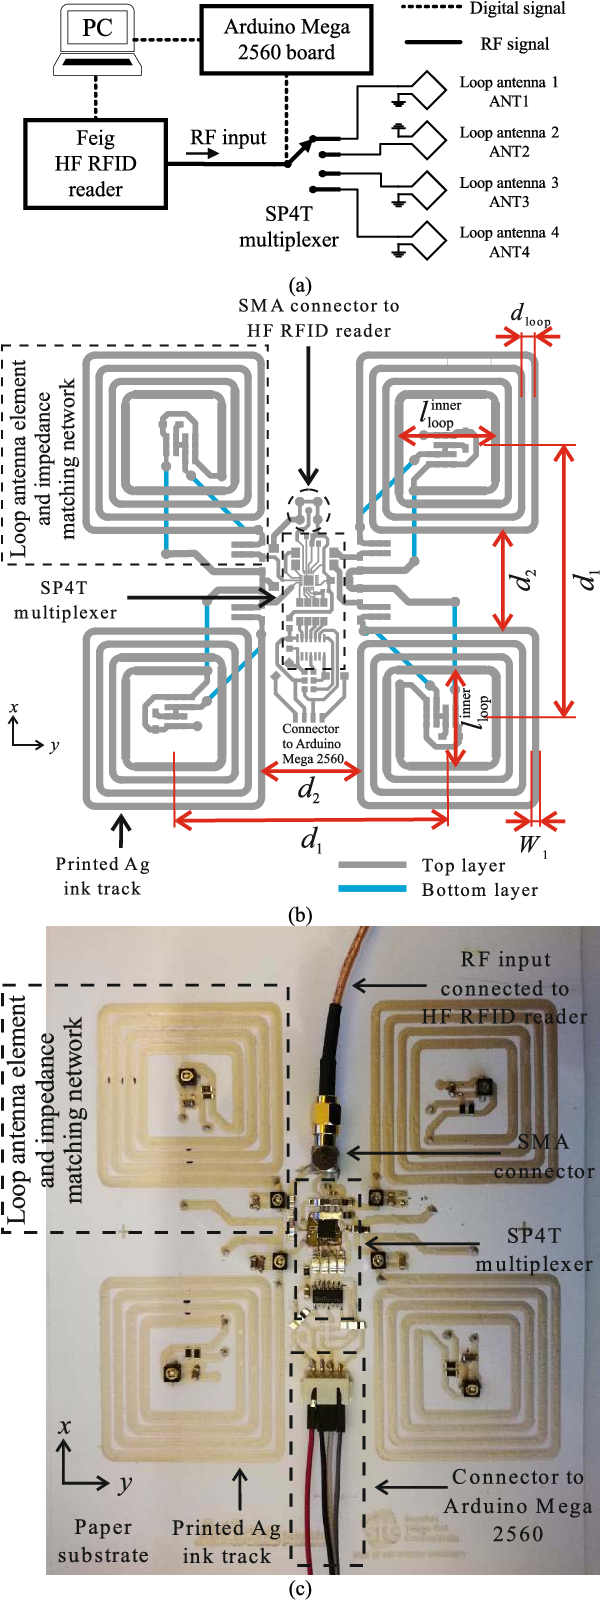 A Paper-Based Screen Printed HF RFID Reader Antenna System